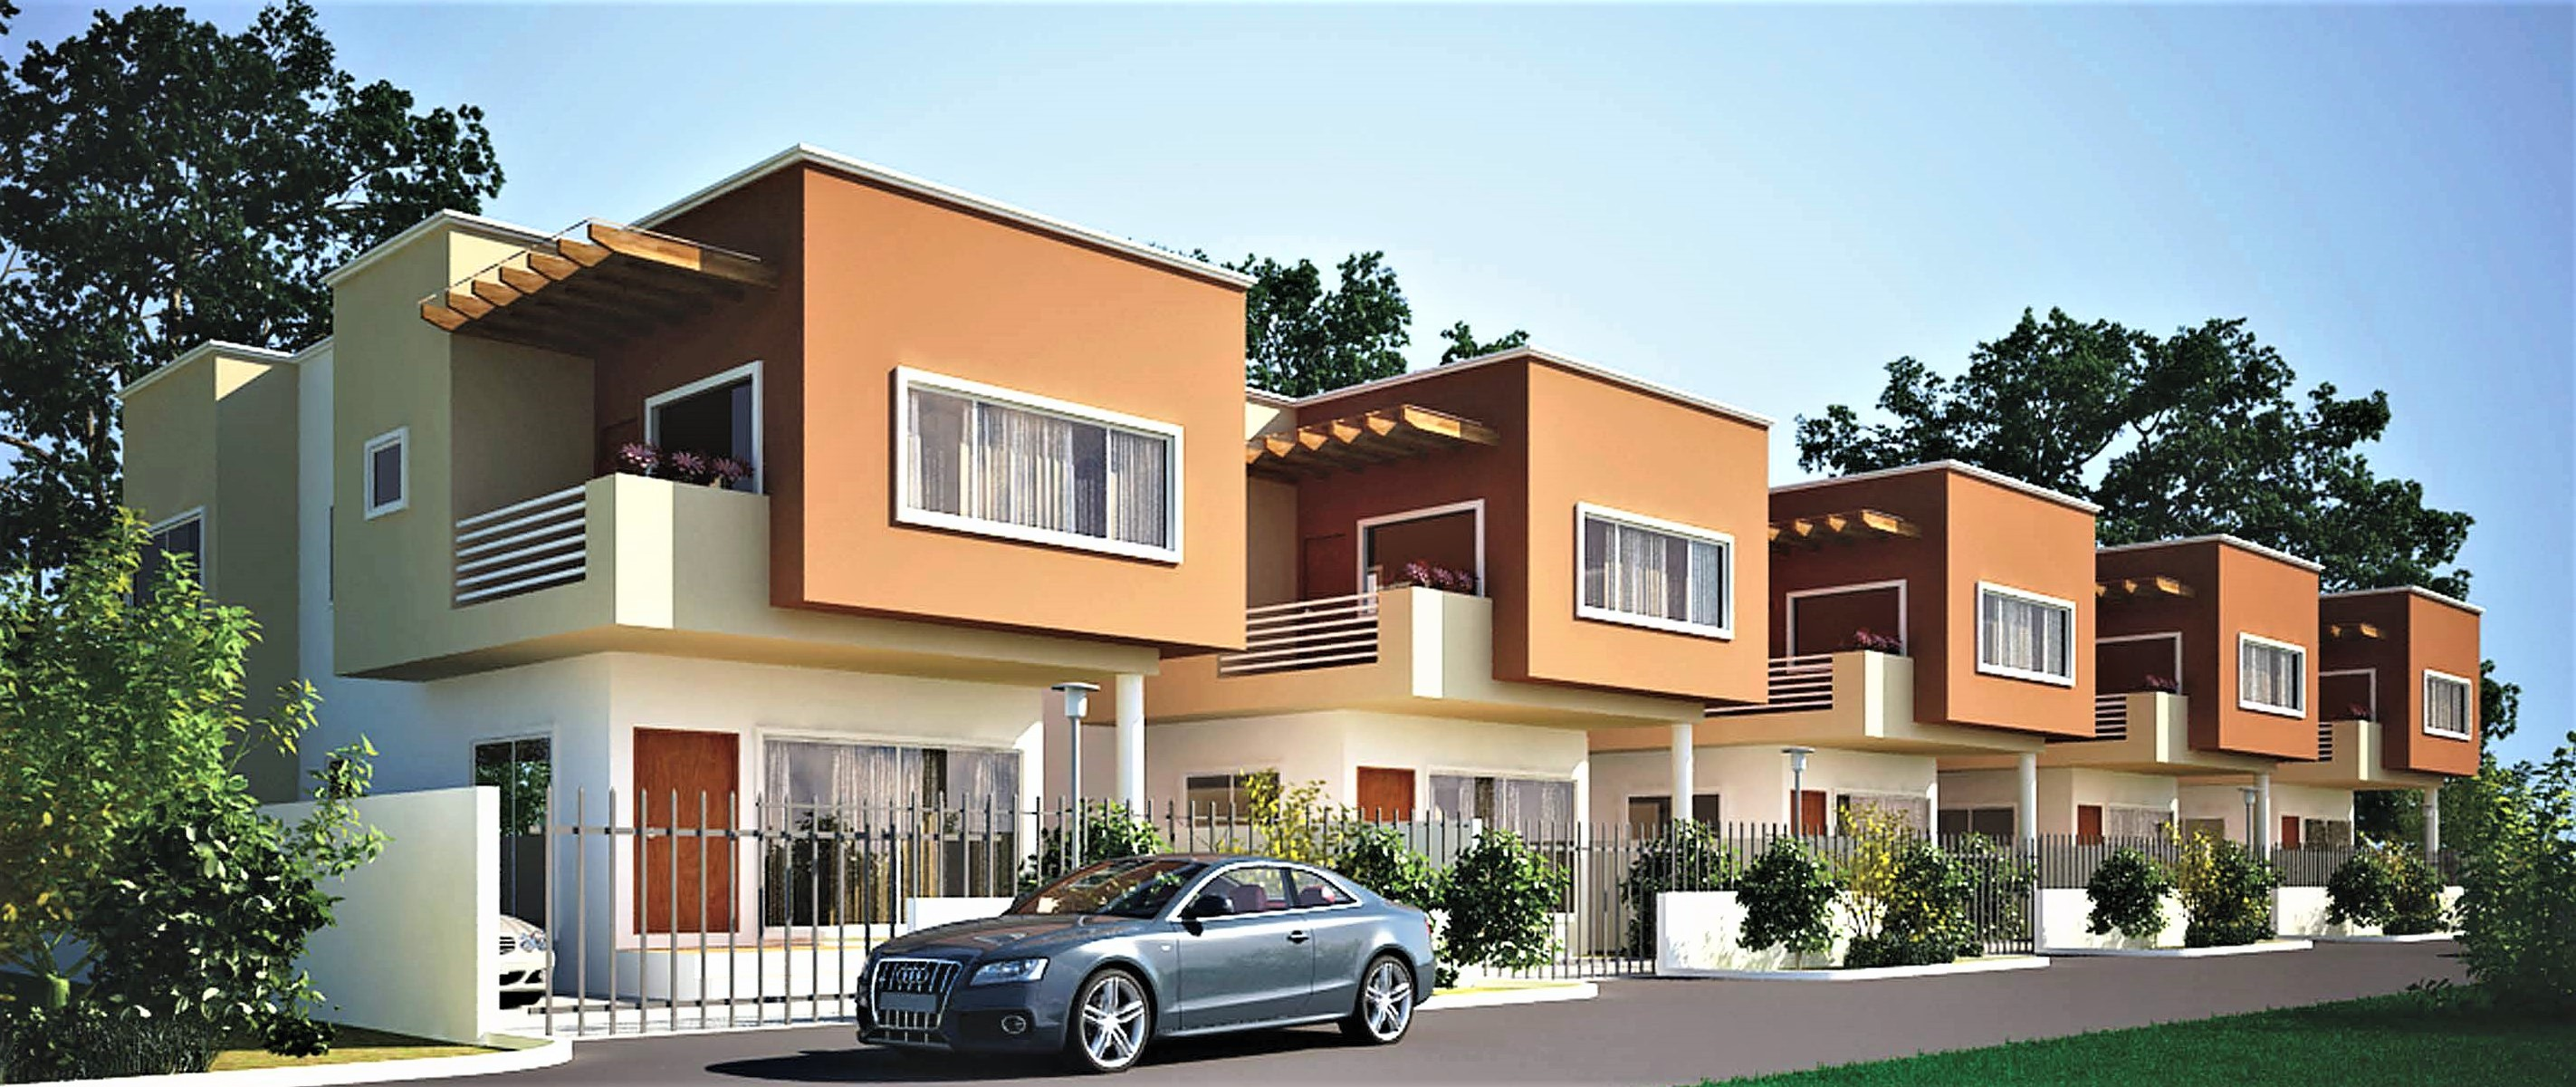 Premier homes 3 bedrooms townhouse abelemkpe ghana for 2 bedroom townhouse